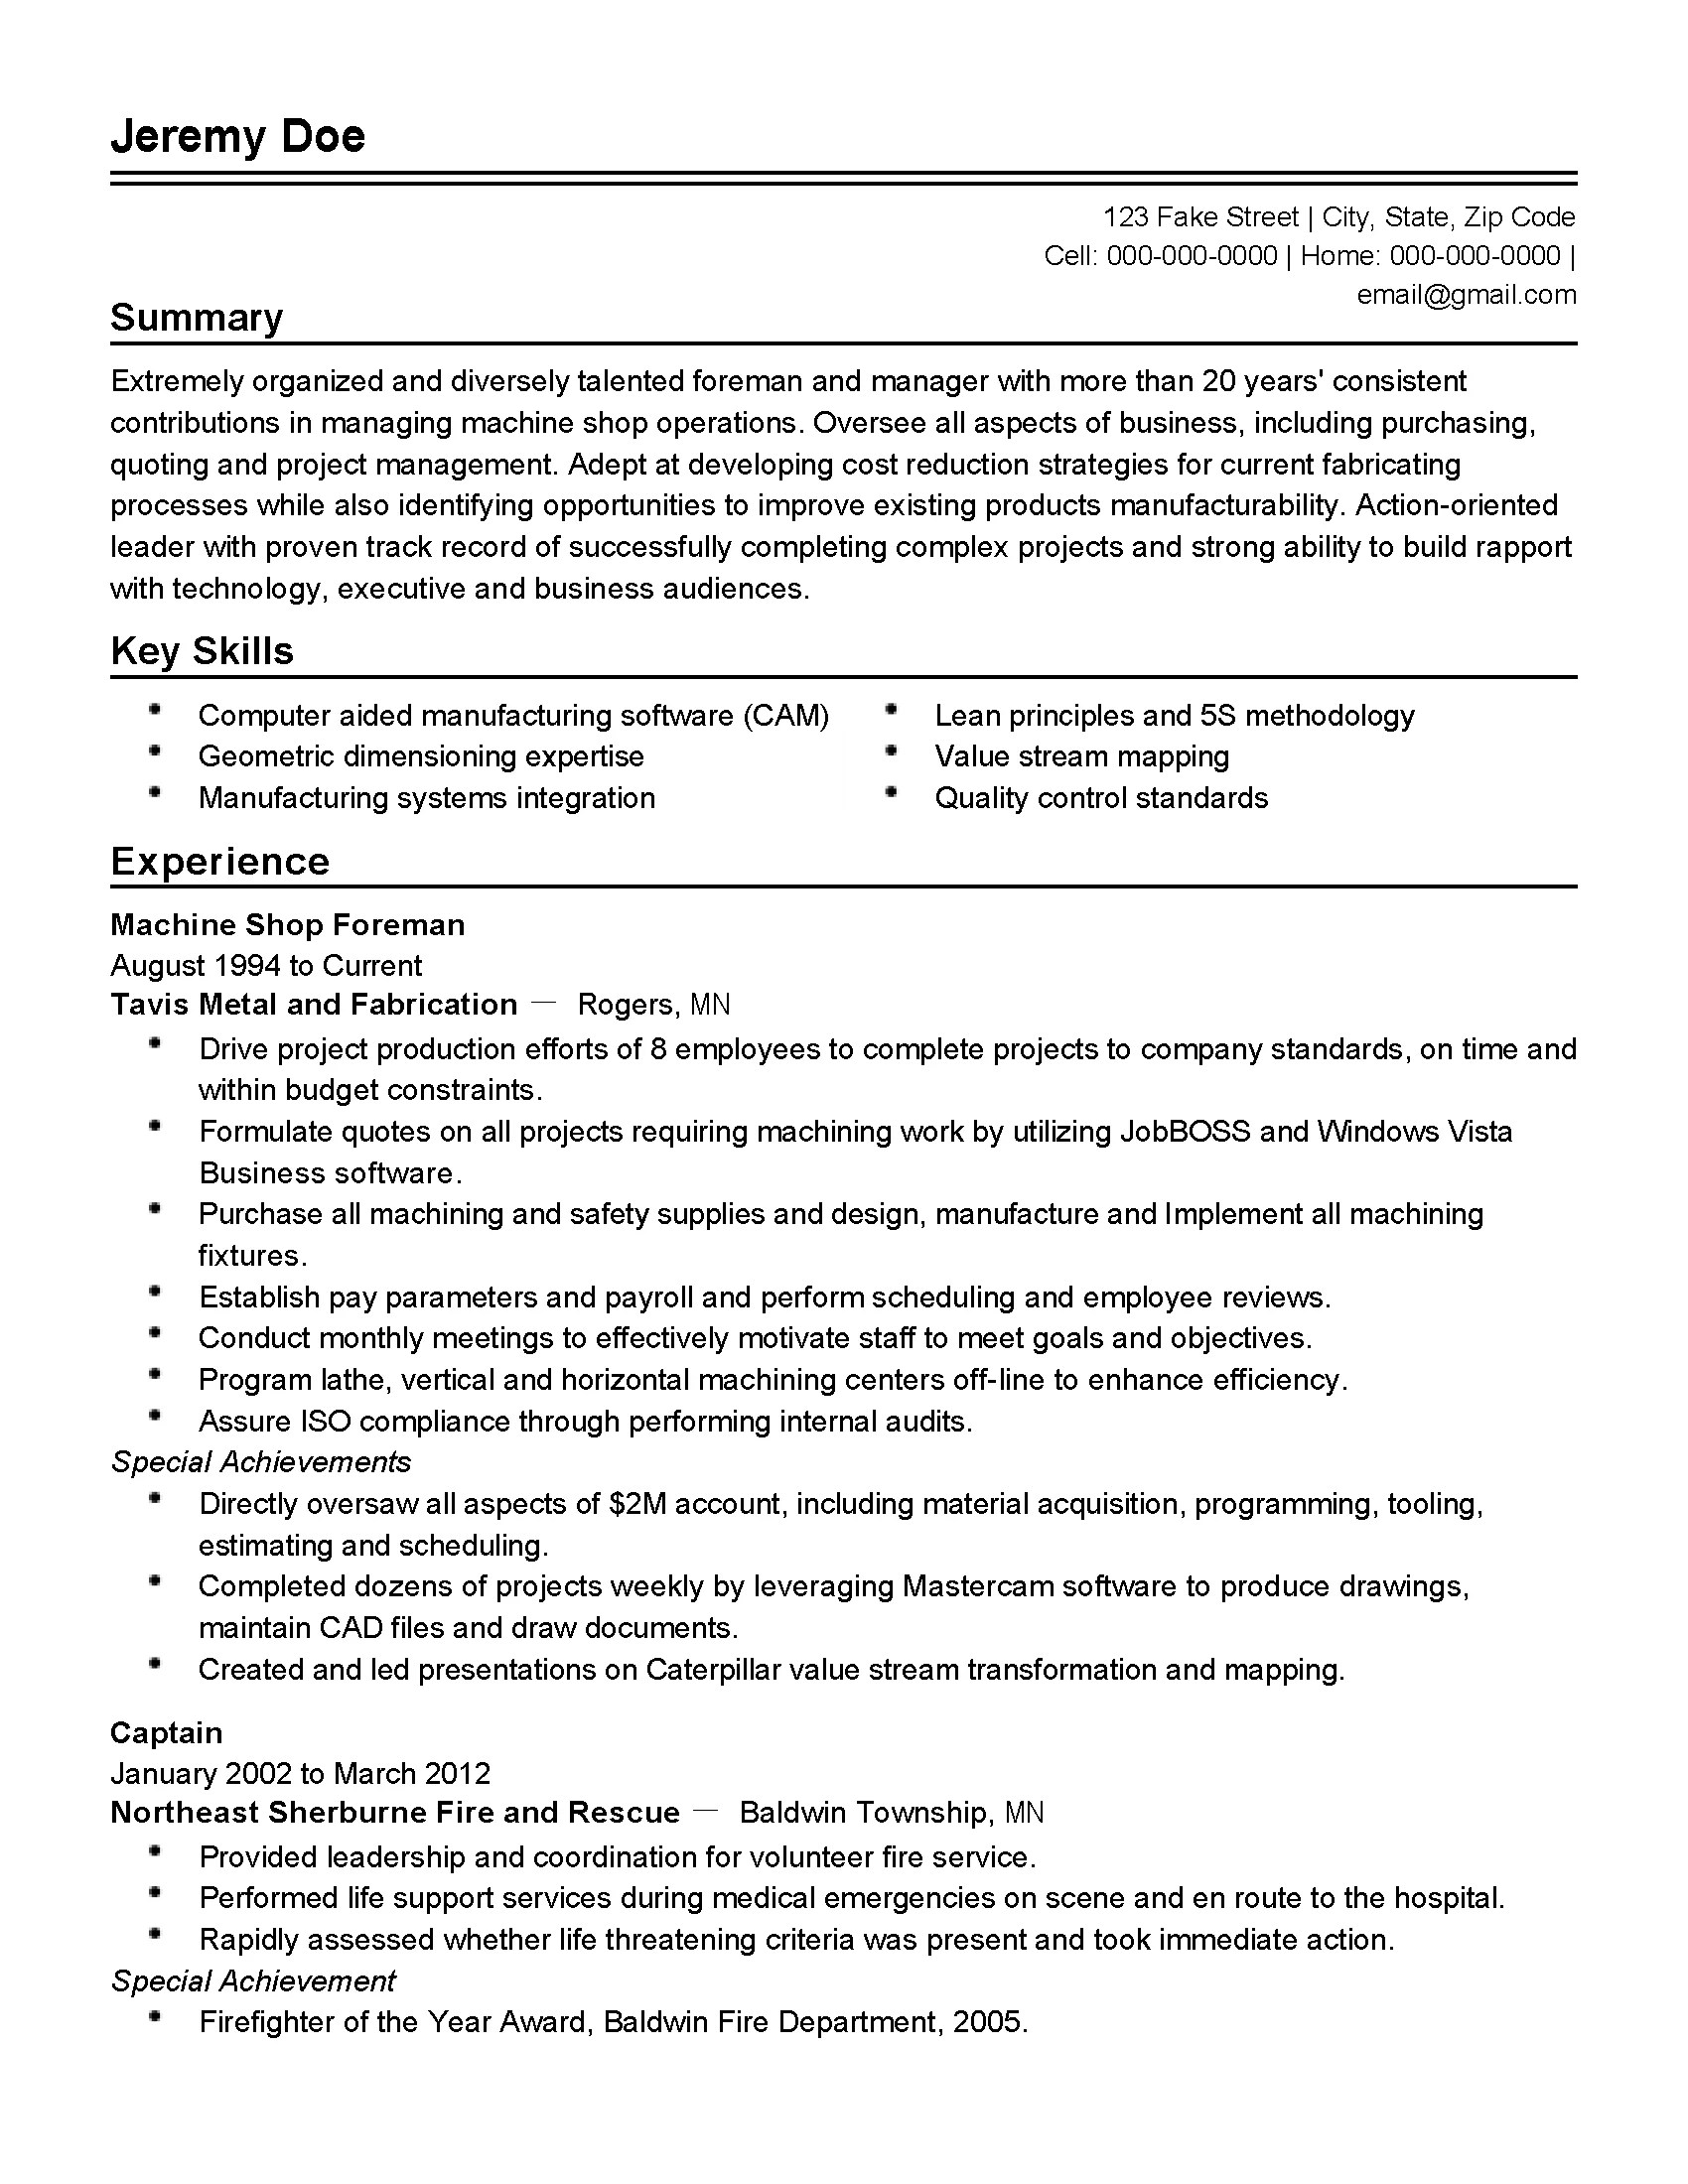 resume examples for production supervisor production supervisor resume sample example template professional machine shop foreman templates. Resume Example. Resume CV Cover Letter